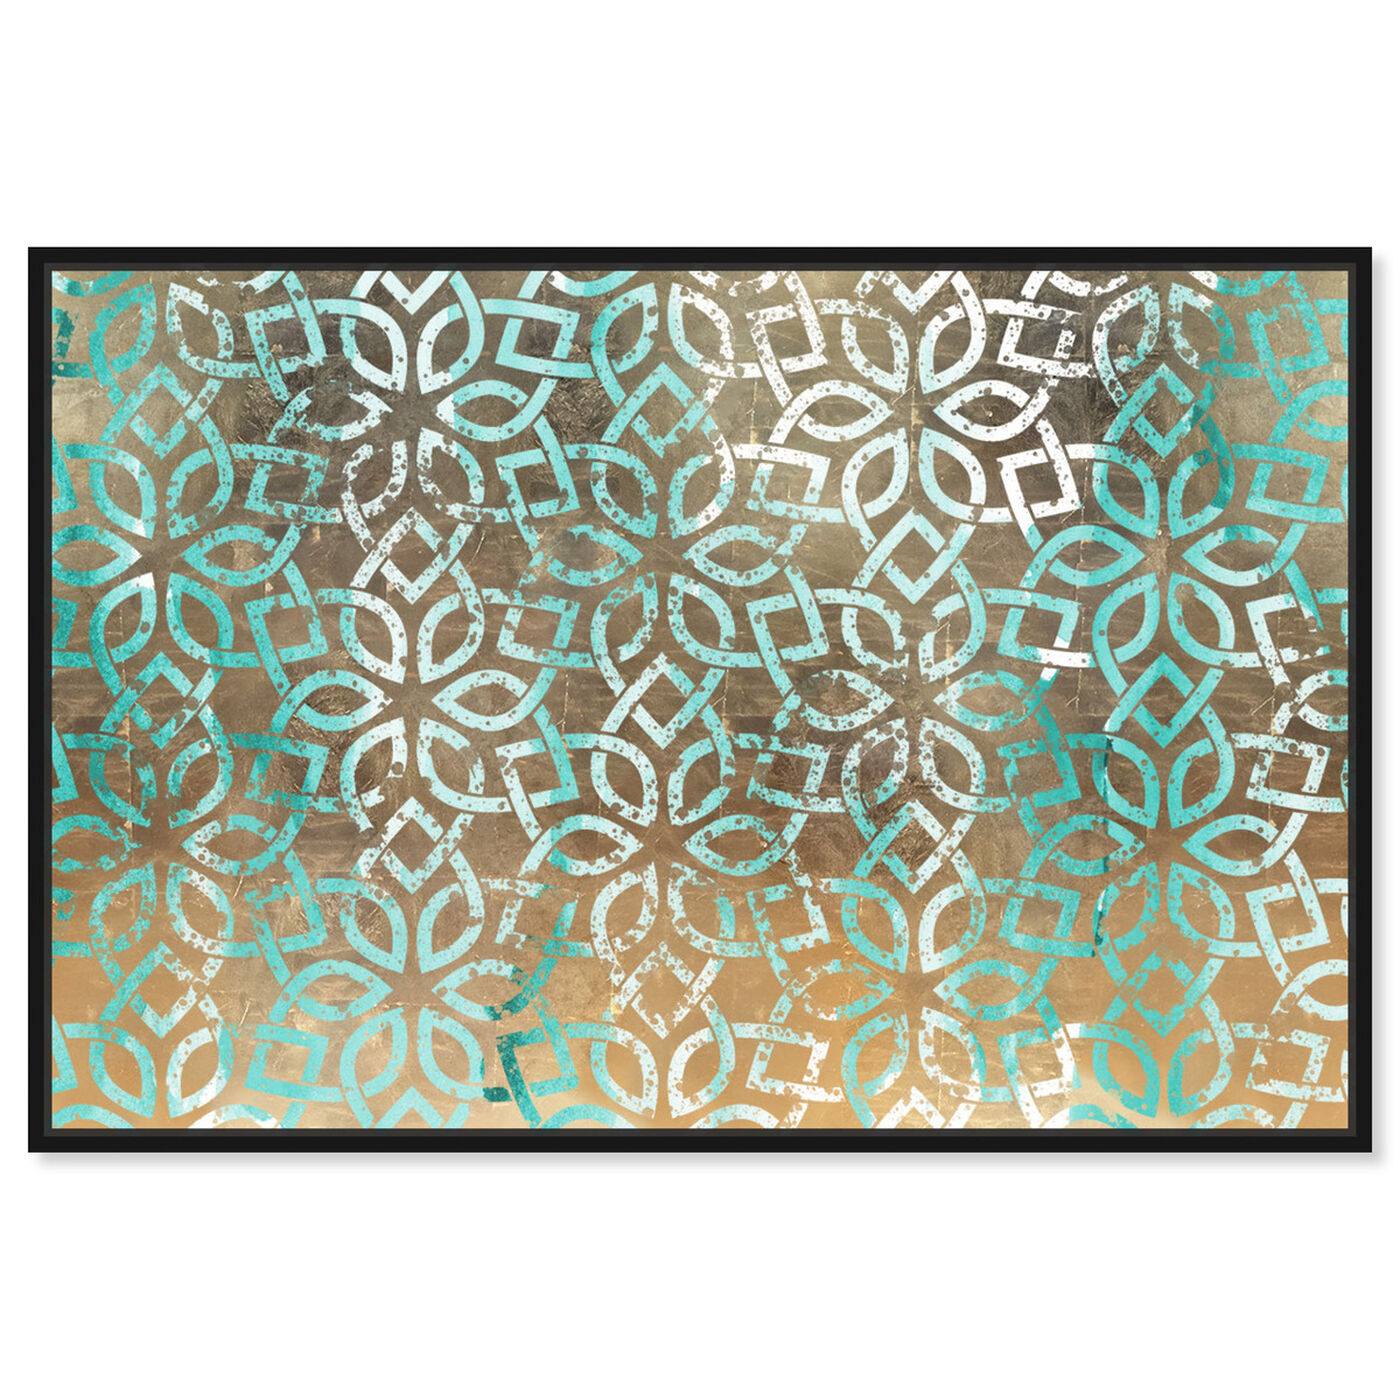 Front view of Regal Jade Lattice featuring abstract and patterns art.